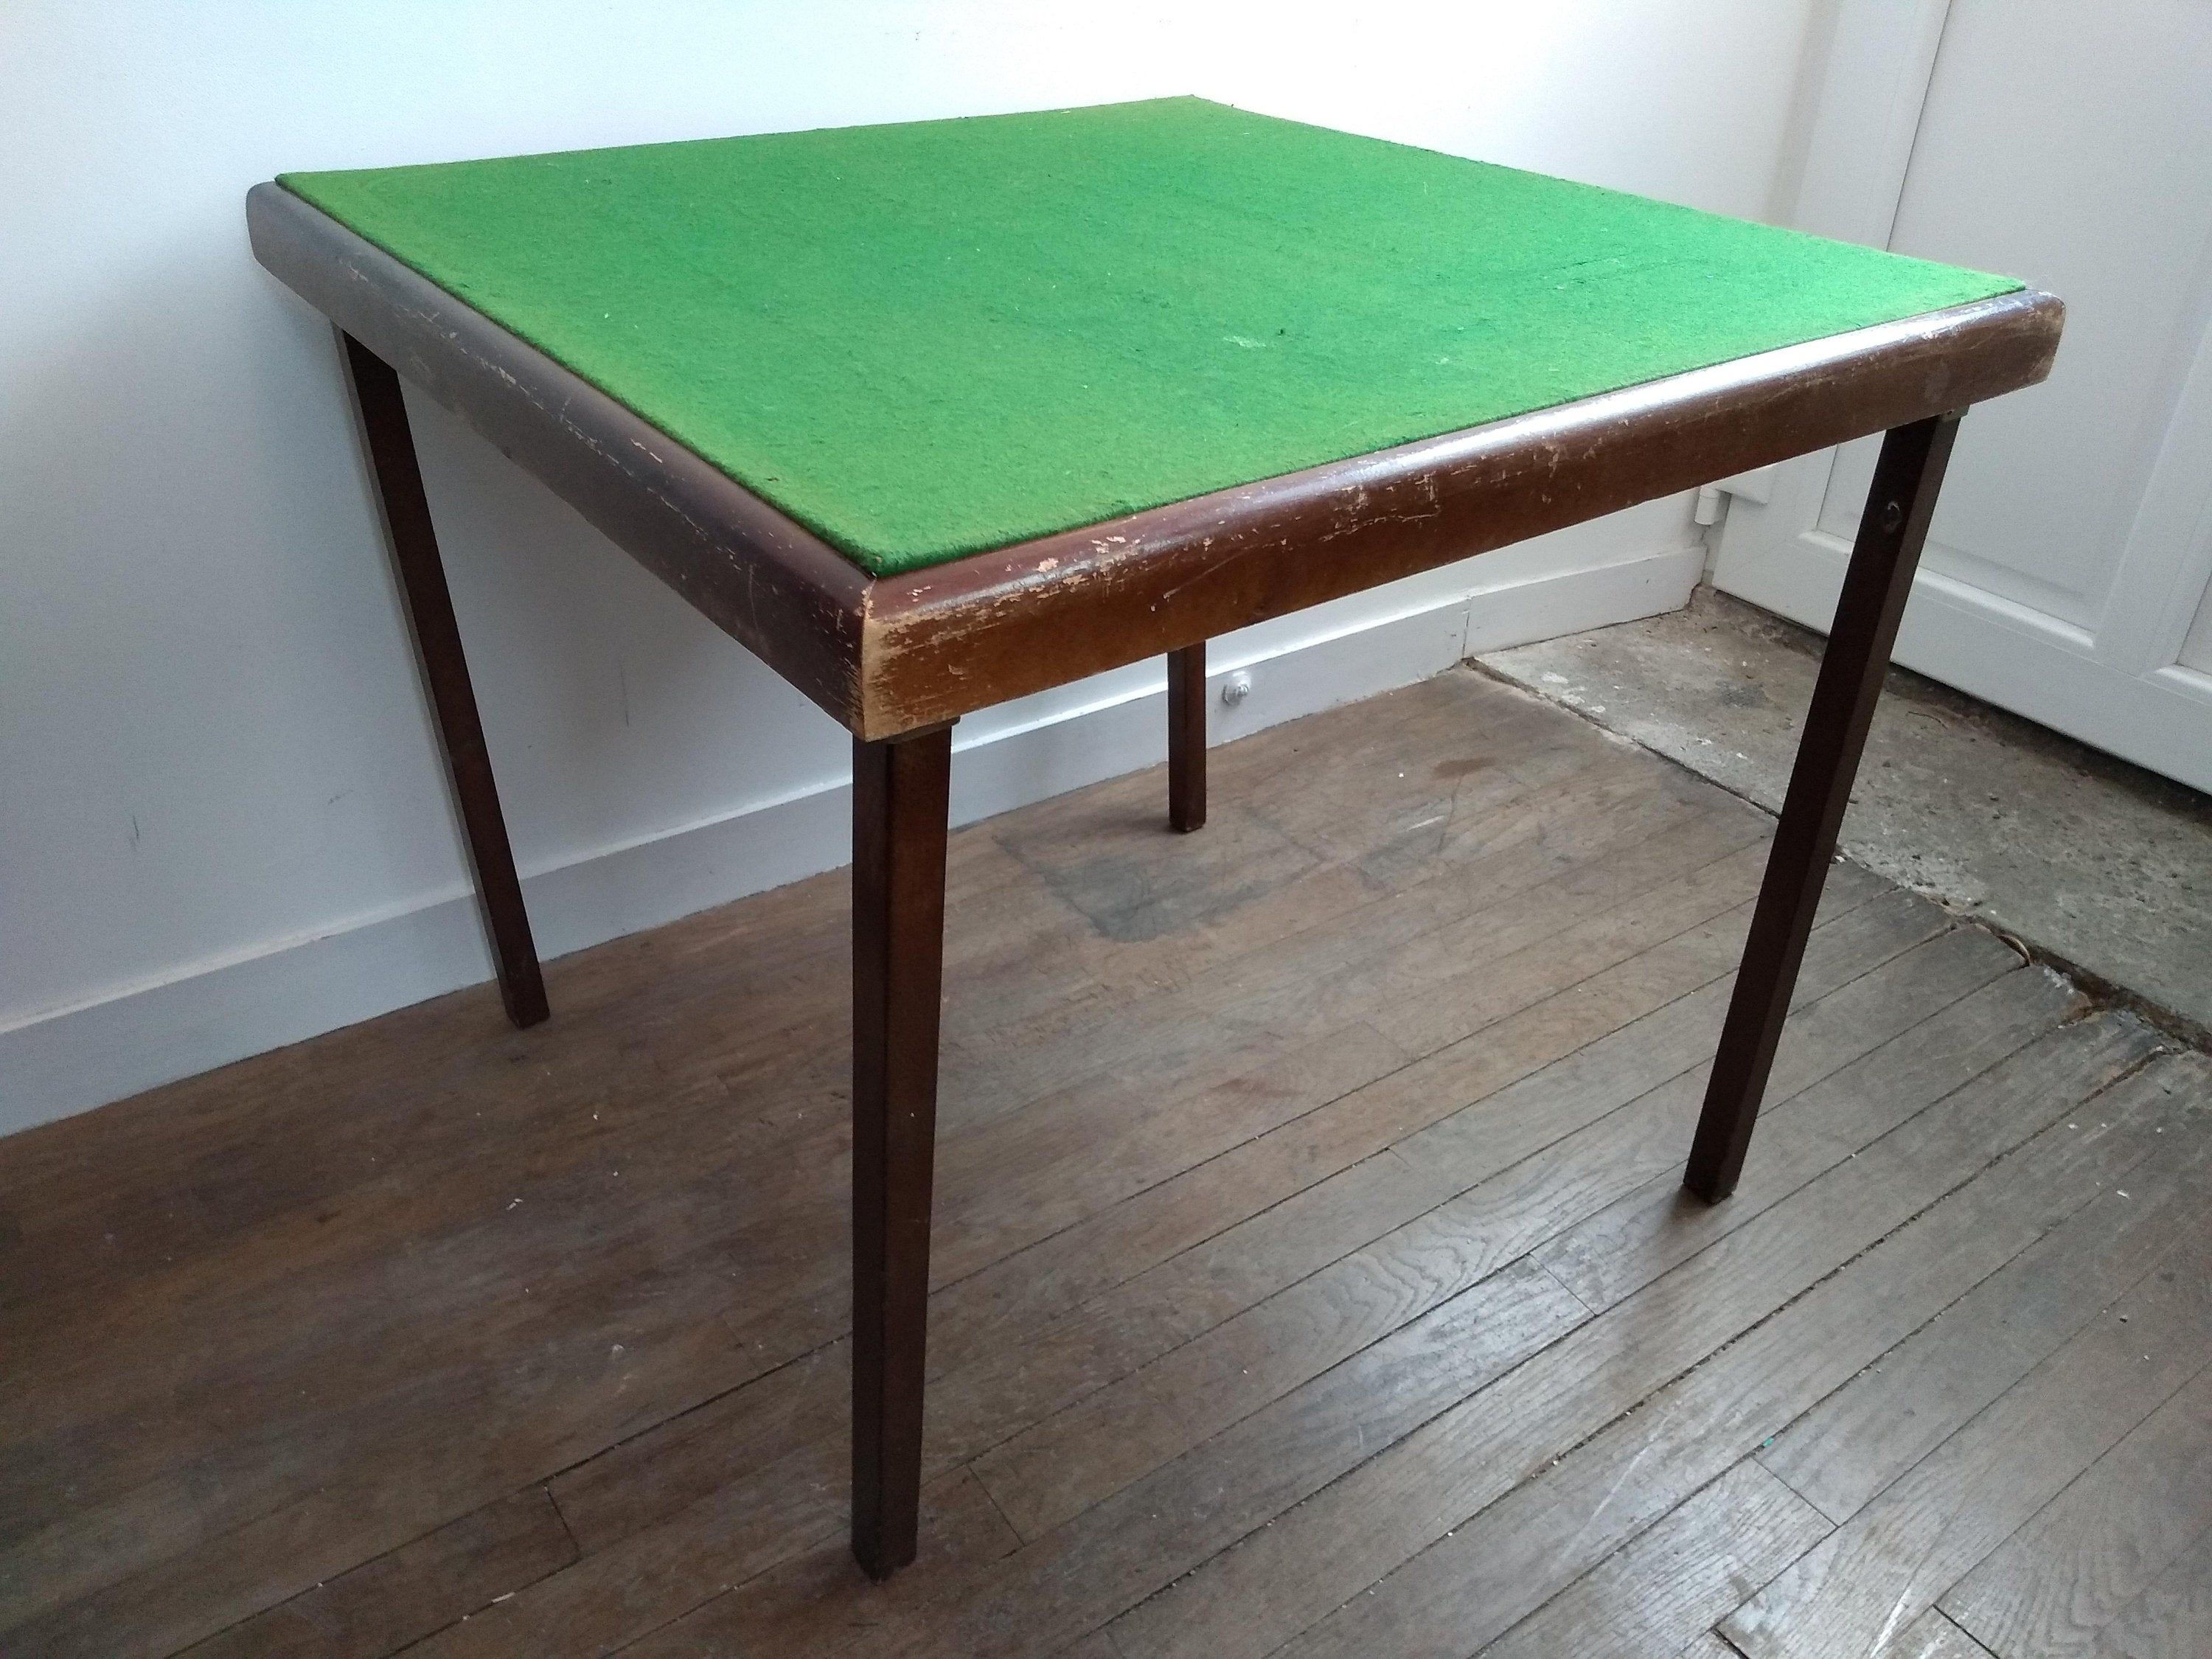 Vintage English Low Green Felt Topped Folding Wooden Foldable Folding Gaming Games Card Table Circa 1960 70 S In 2020 Living Room Coffee Table Home Coffee Tables Table